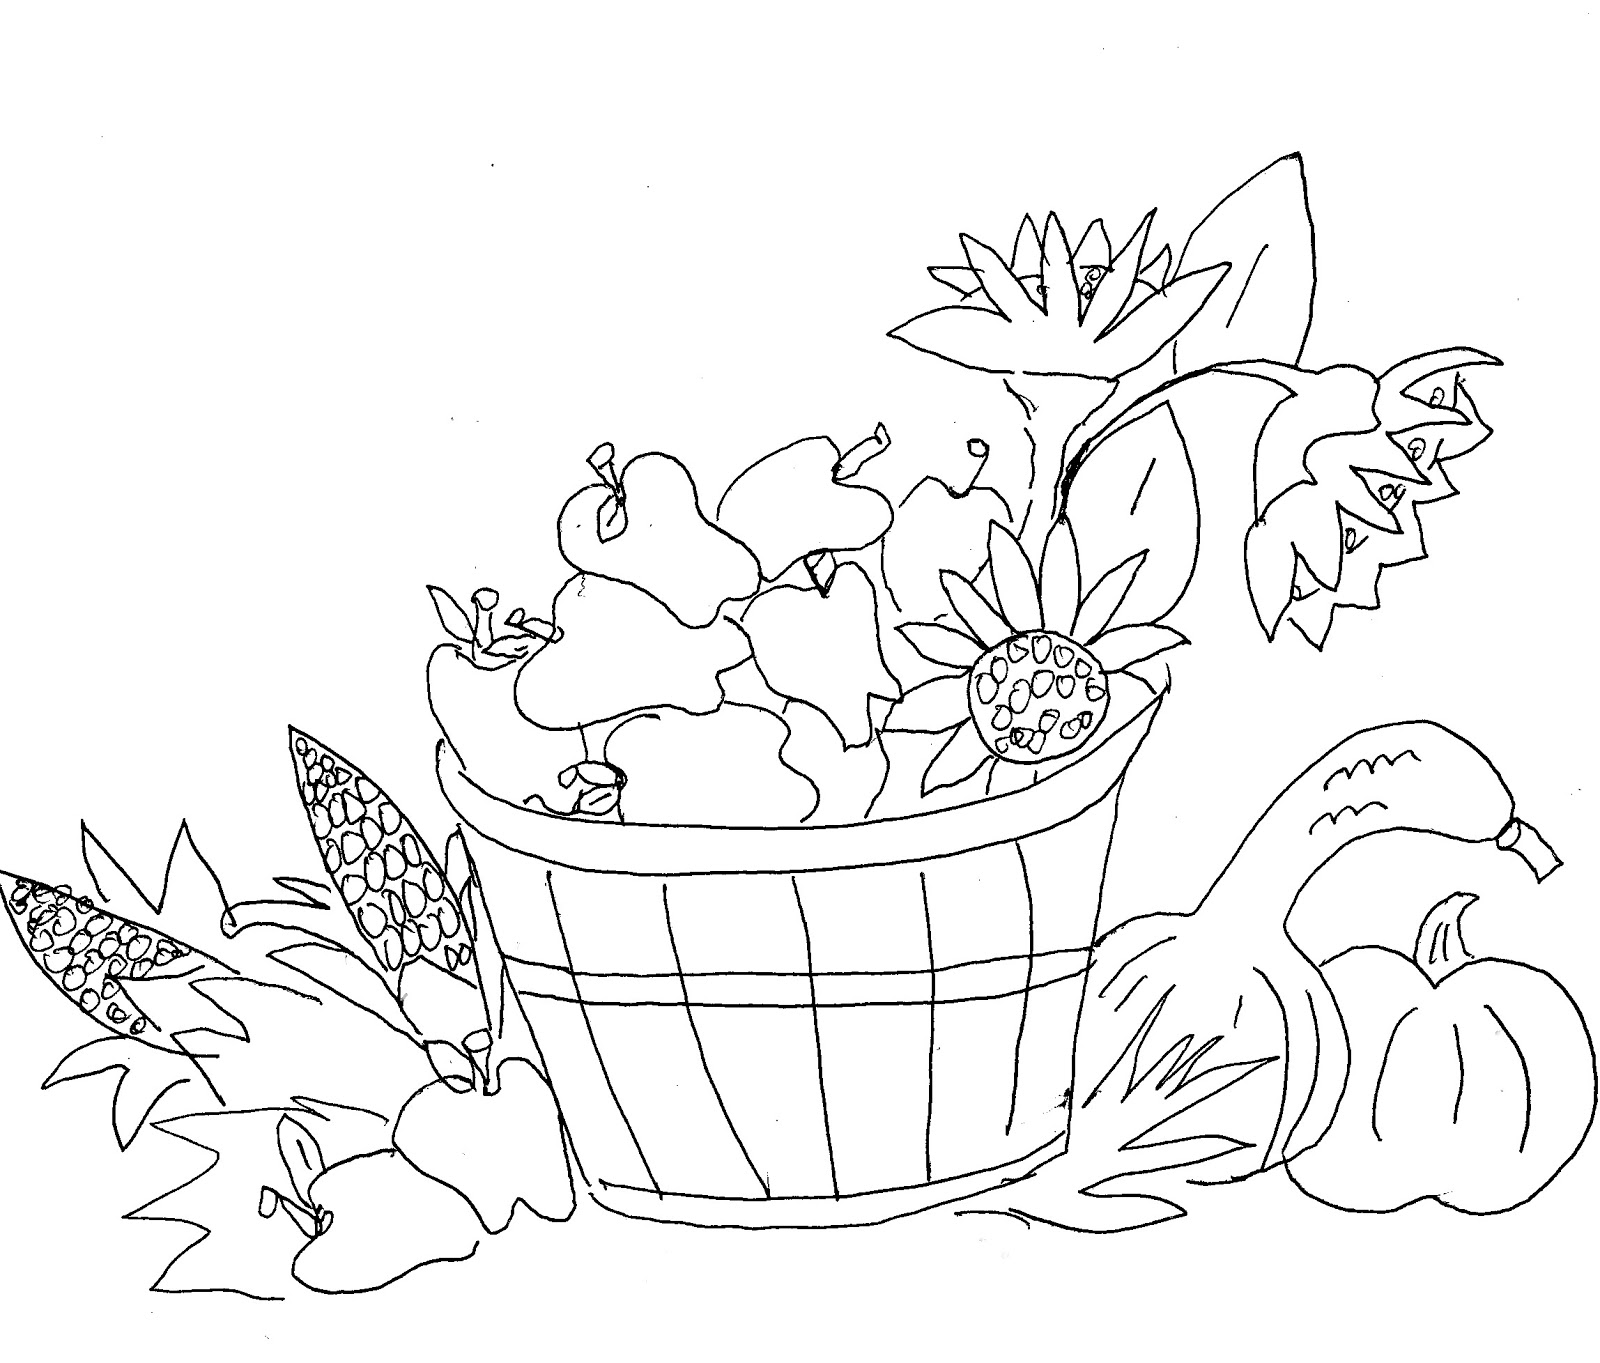 Autumn clipart black and white free clipart free stock Fall black and white autumn borders black and white clipart ... clipart free stock